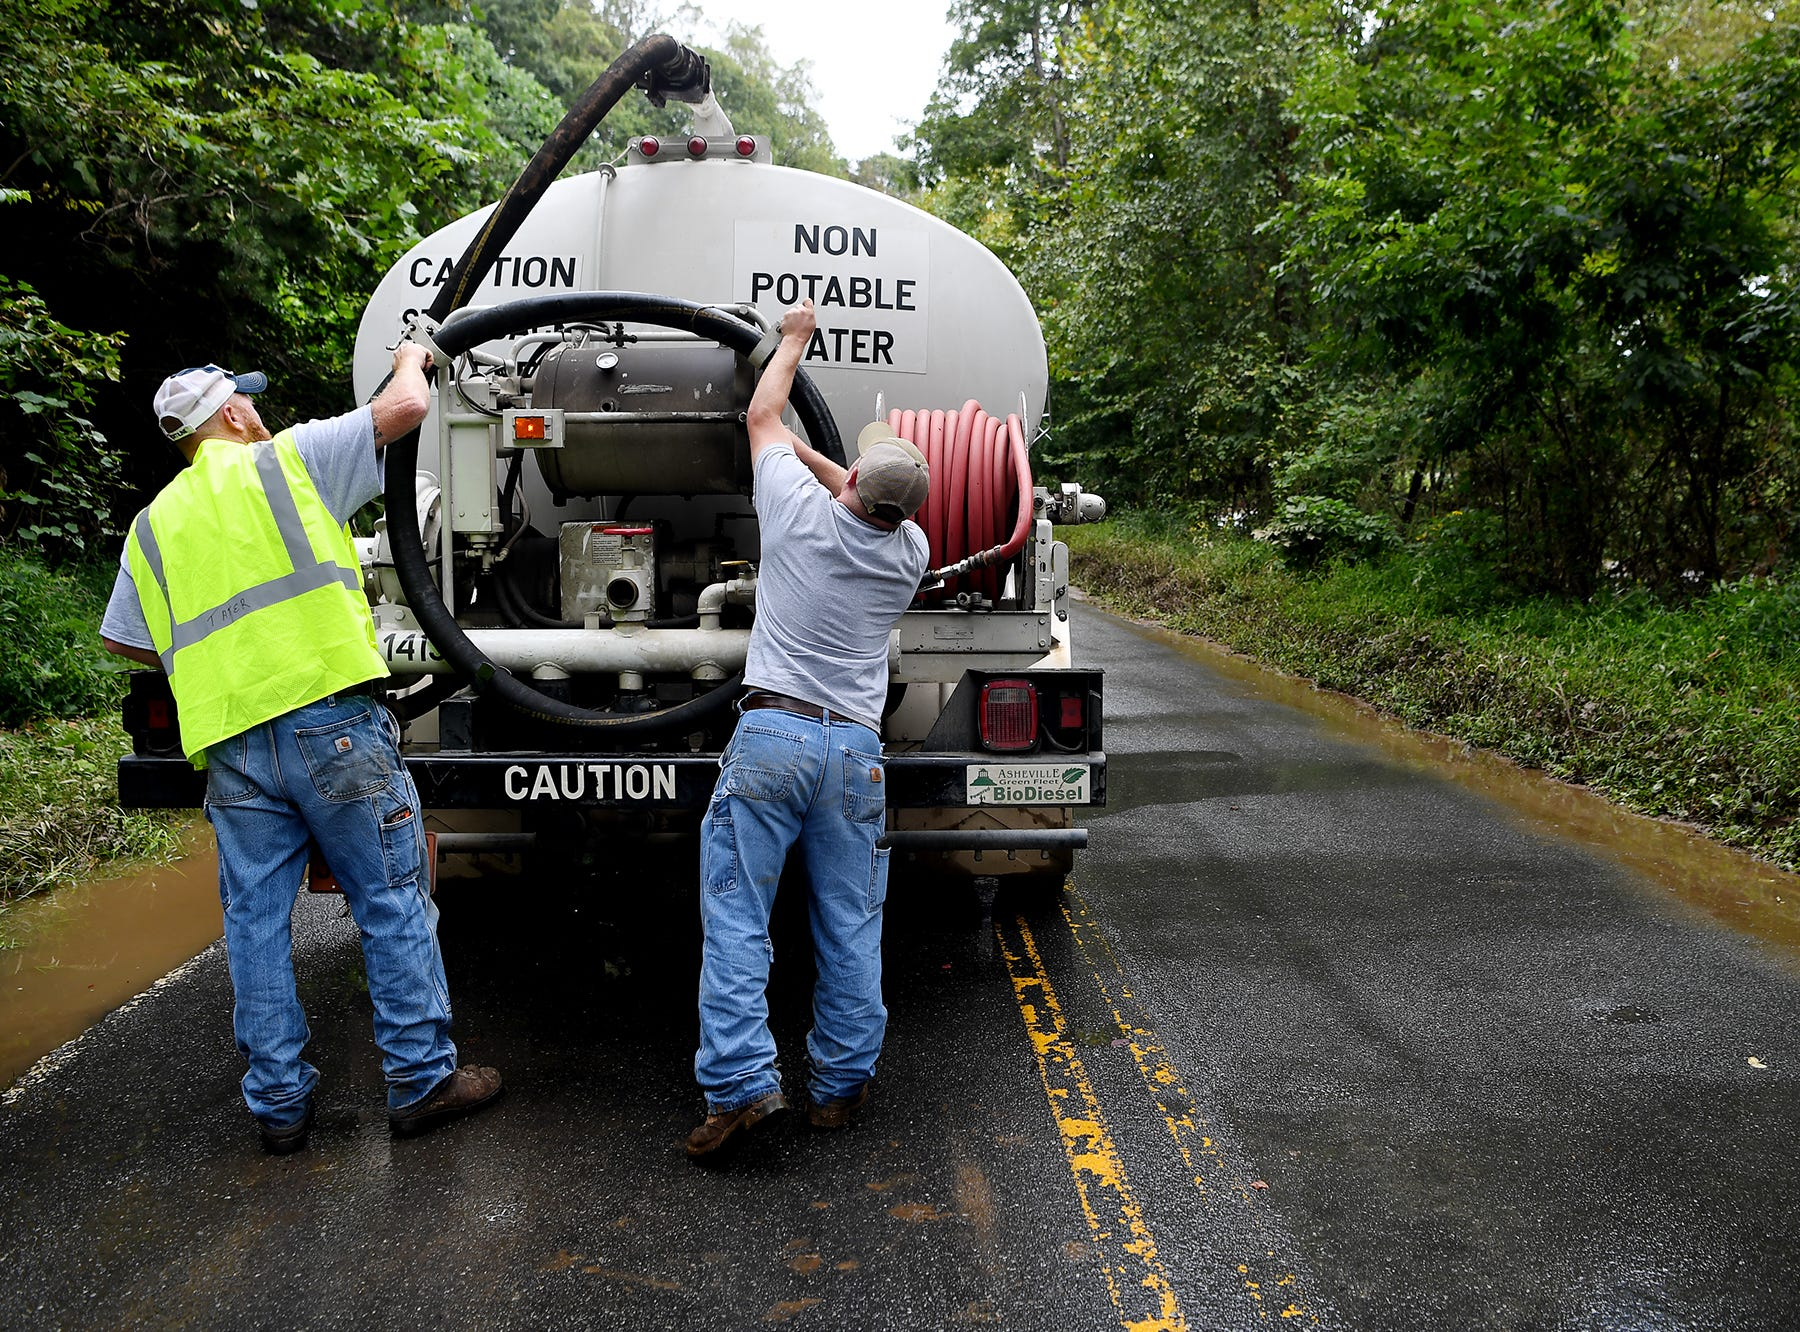 Jonathan Surrett, left, and Adrian Edwards replace a hose after filling up a city flusher truck to clean Azalea Road of debris in East Asheville Sept. 17, 2018 following flooding from Swannanoa River after Tropical Storm Florence.